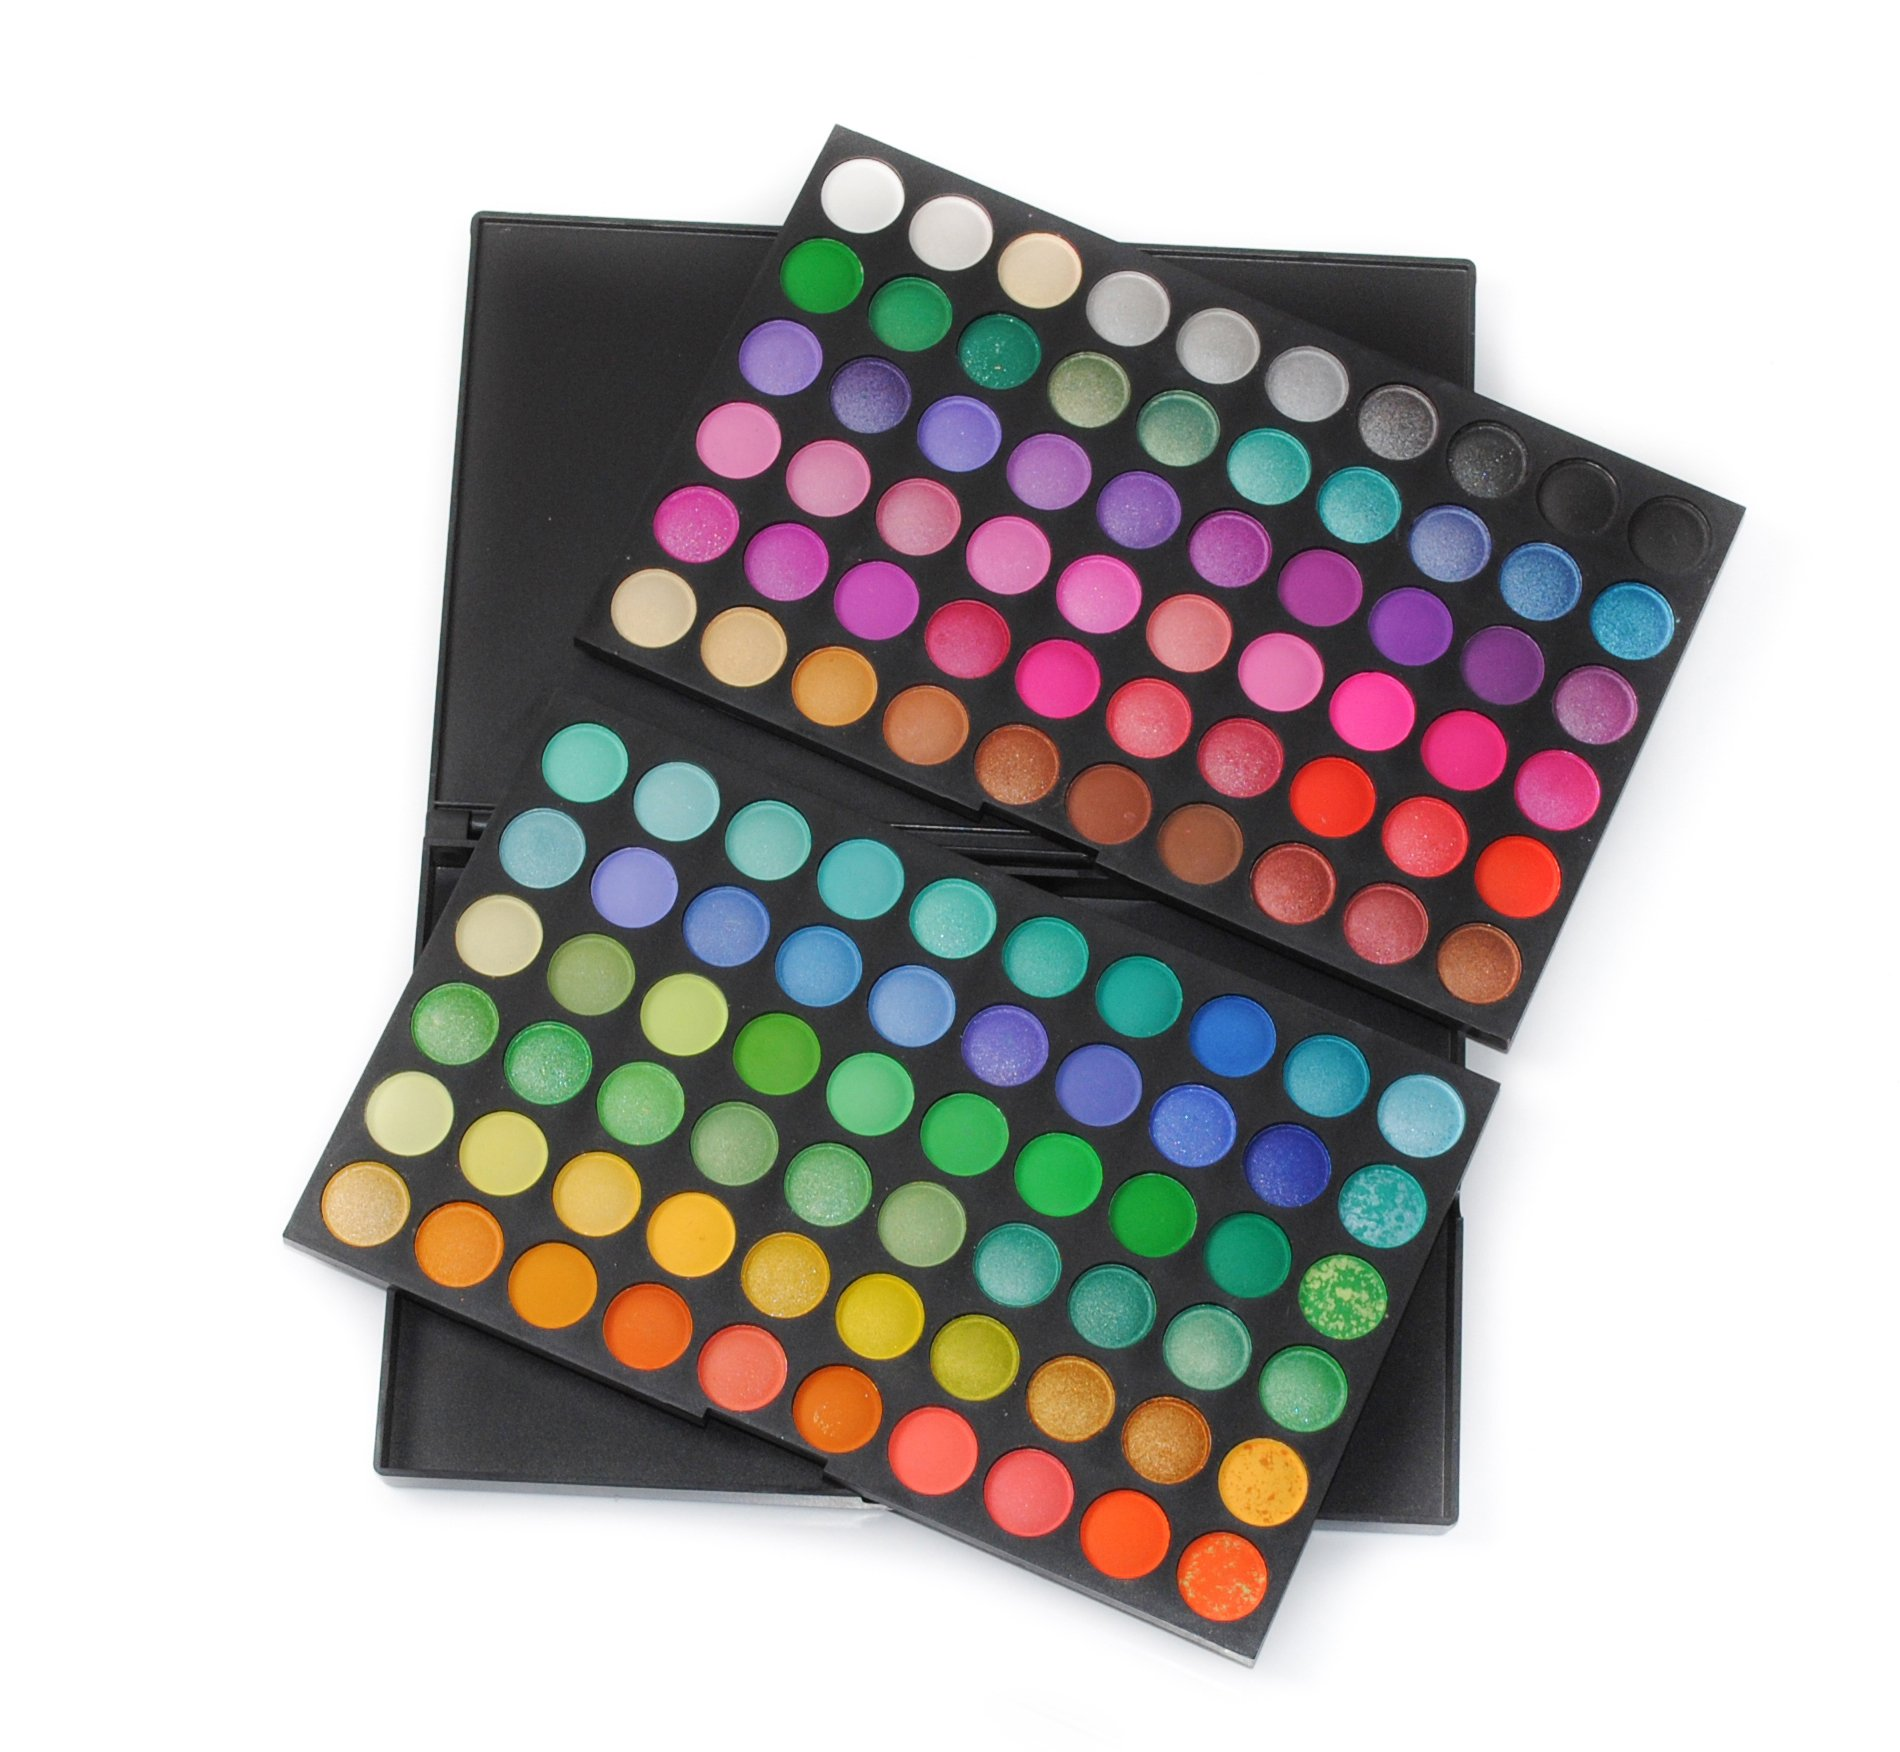 Frola Cosmetics Professional 120 Color Eyeshadow Makeup Palette Cosmetics Set #01